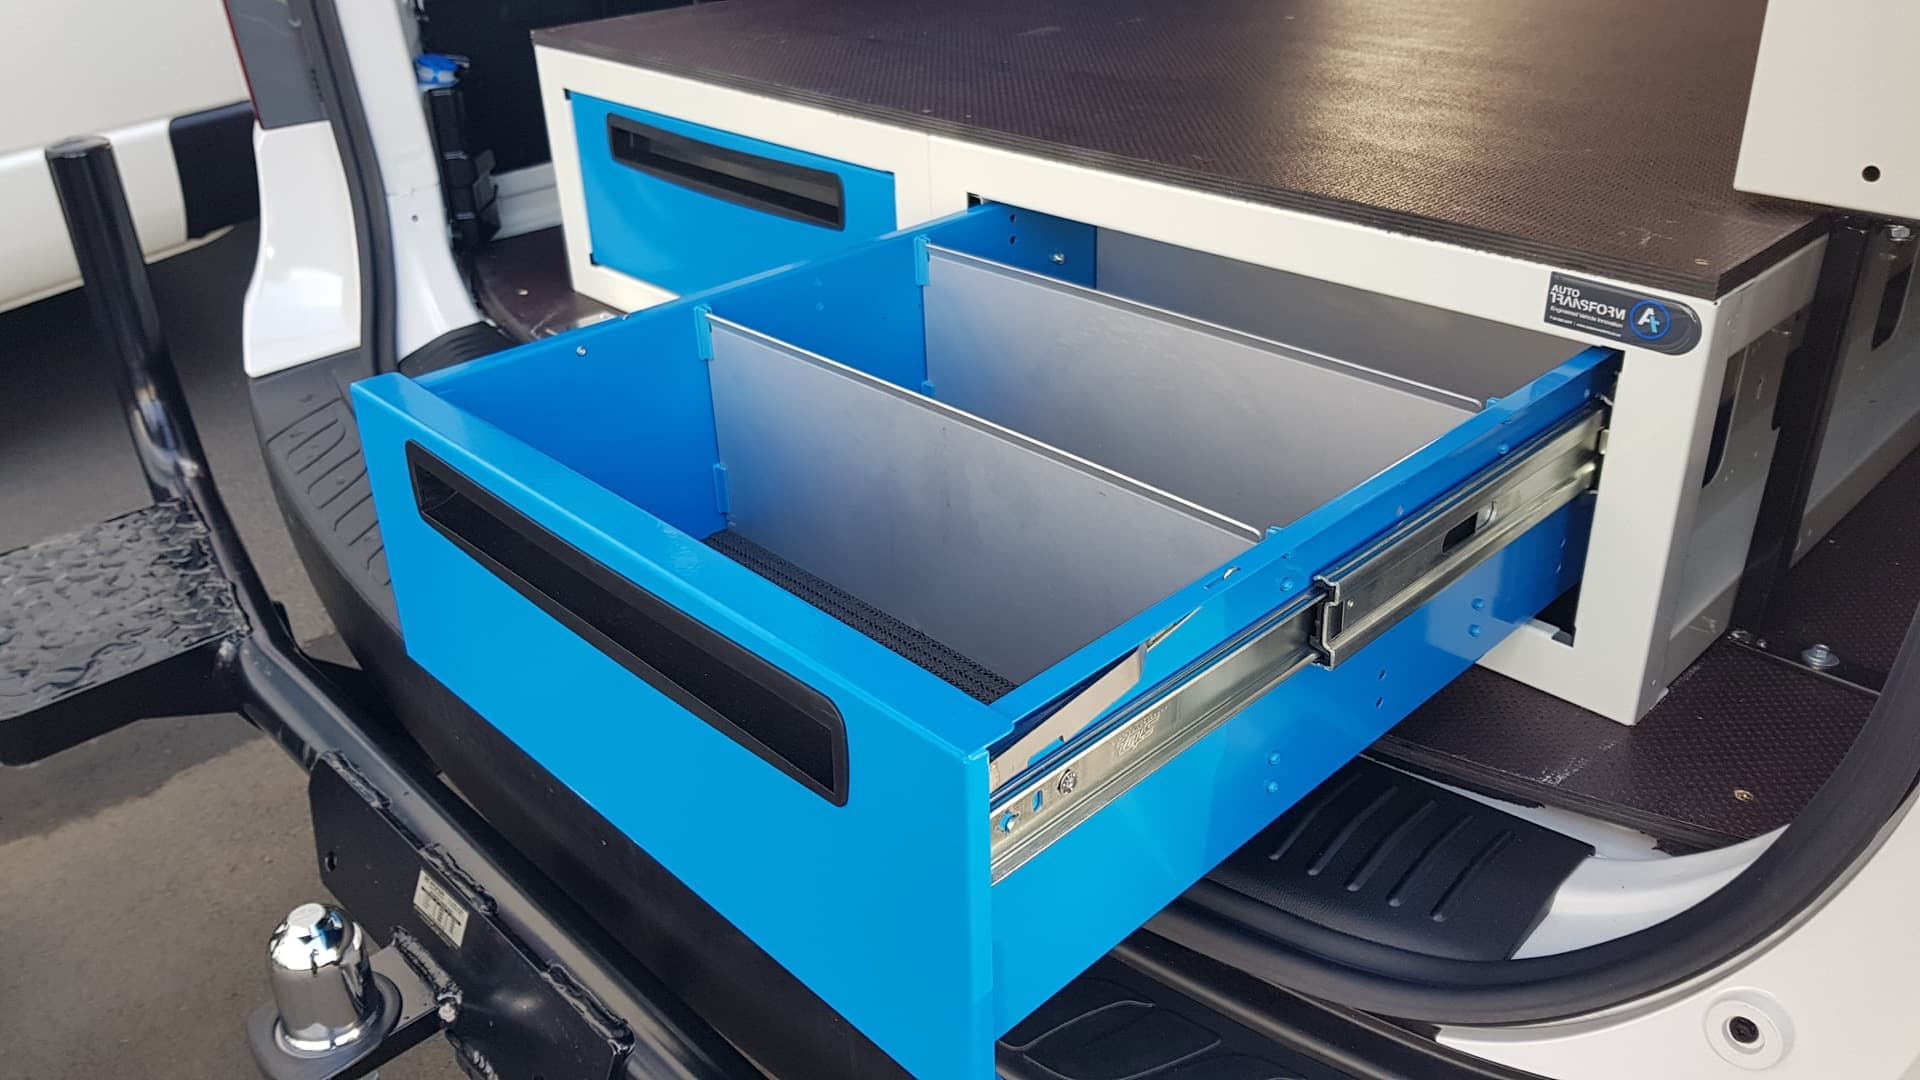 Commercial van fitout with modular drawers with dividers